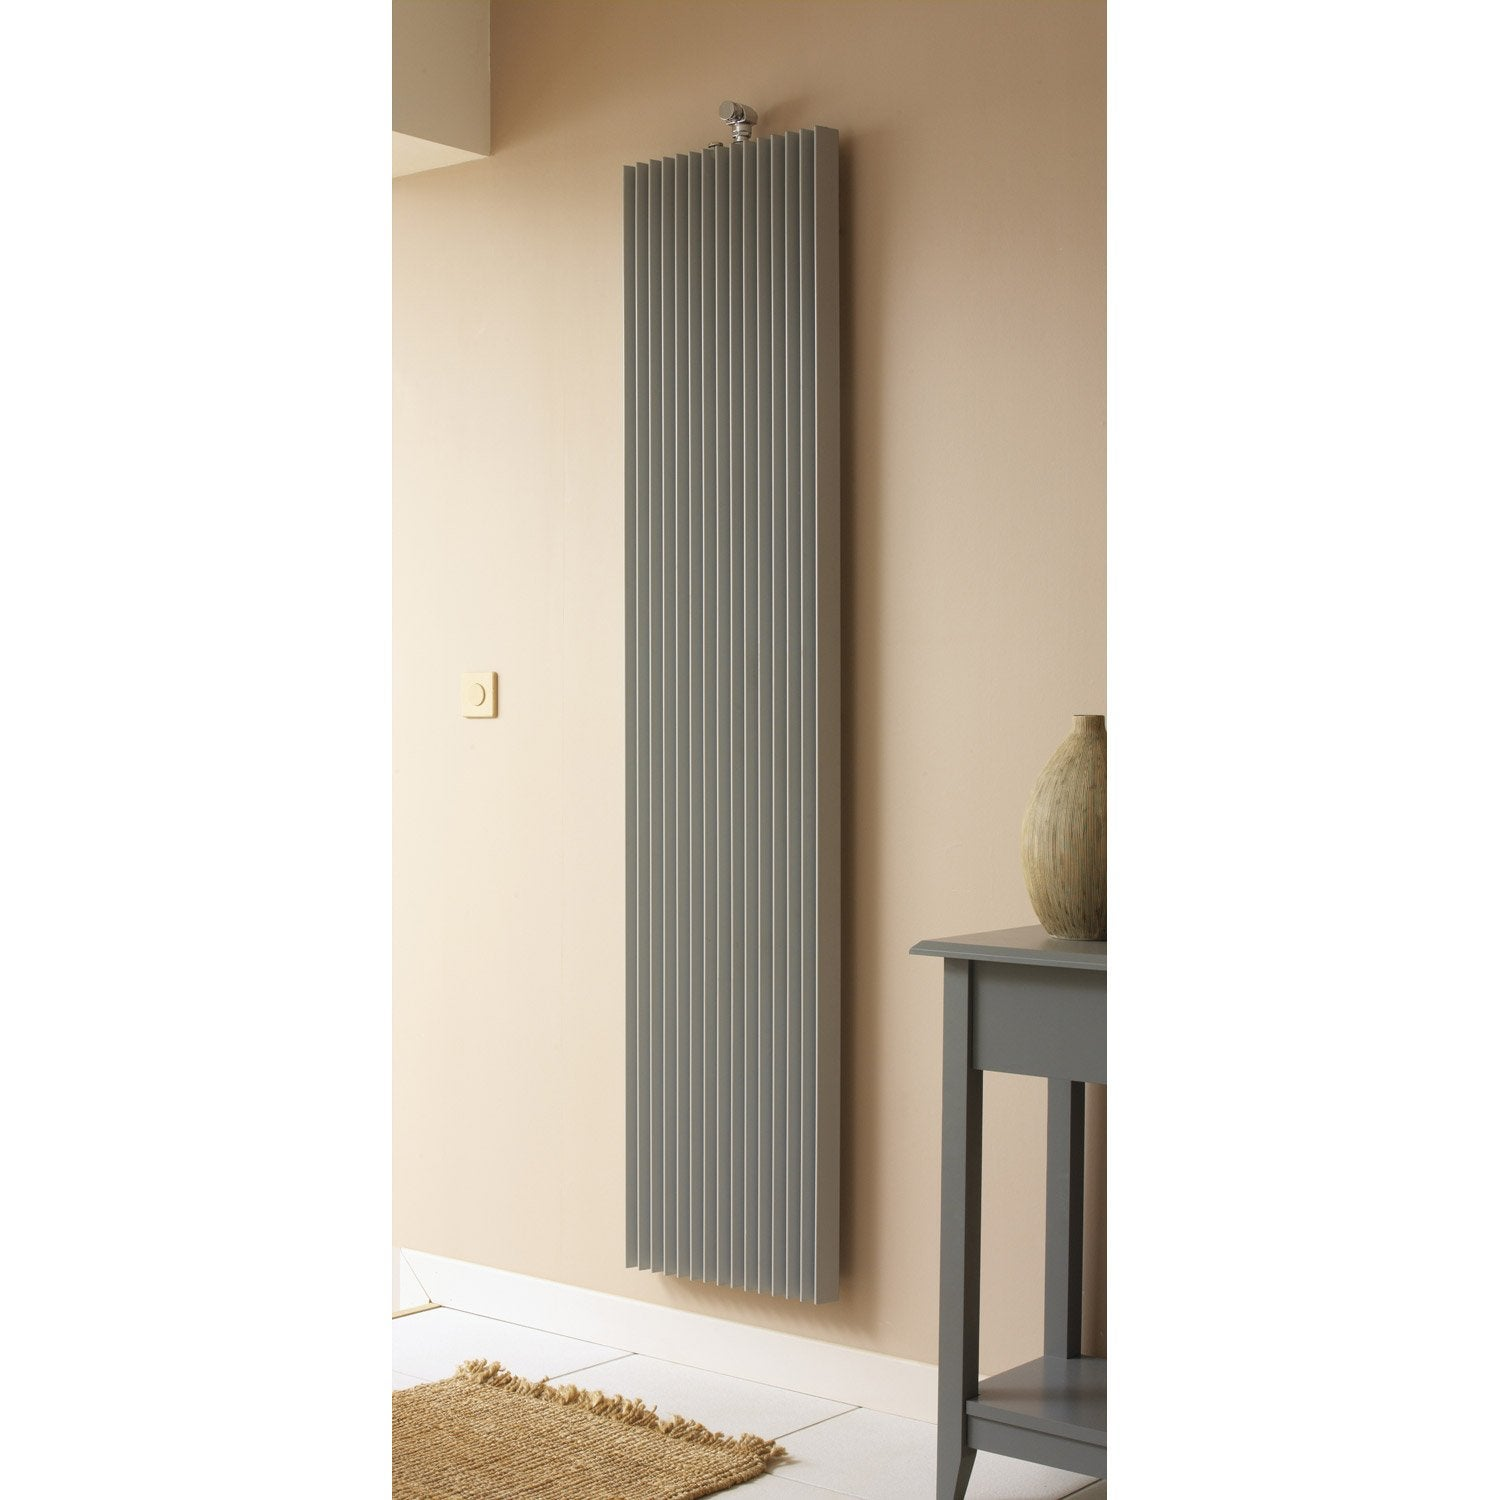 radiateur chauffage central acier jaga iguana aplano 1798w leroy merlin. Black Bedroom Furniture Sets. Home Design Ideas